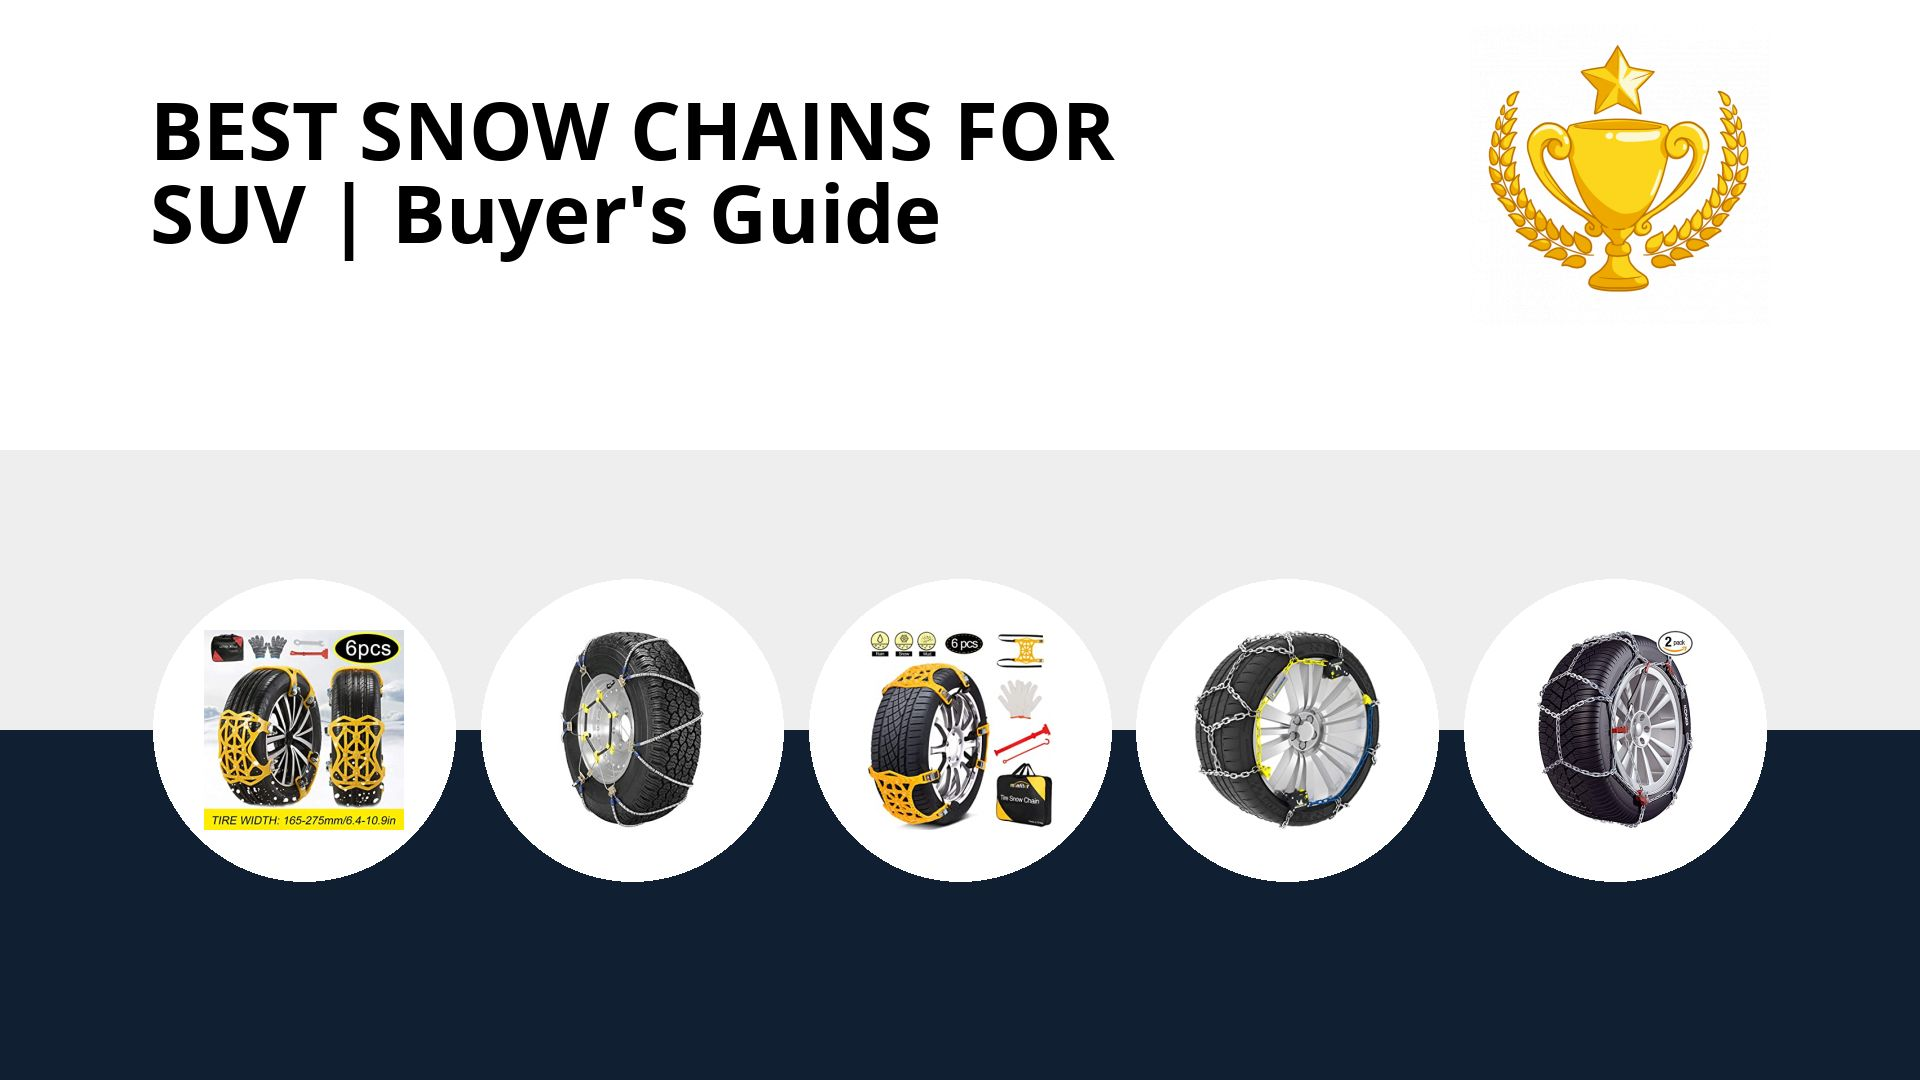 Best Snow Chains For Suv: image